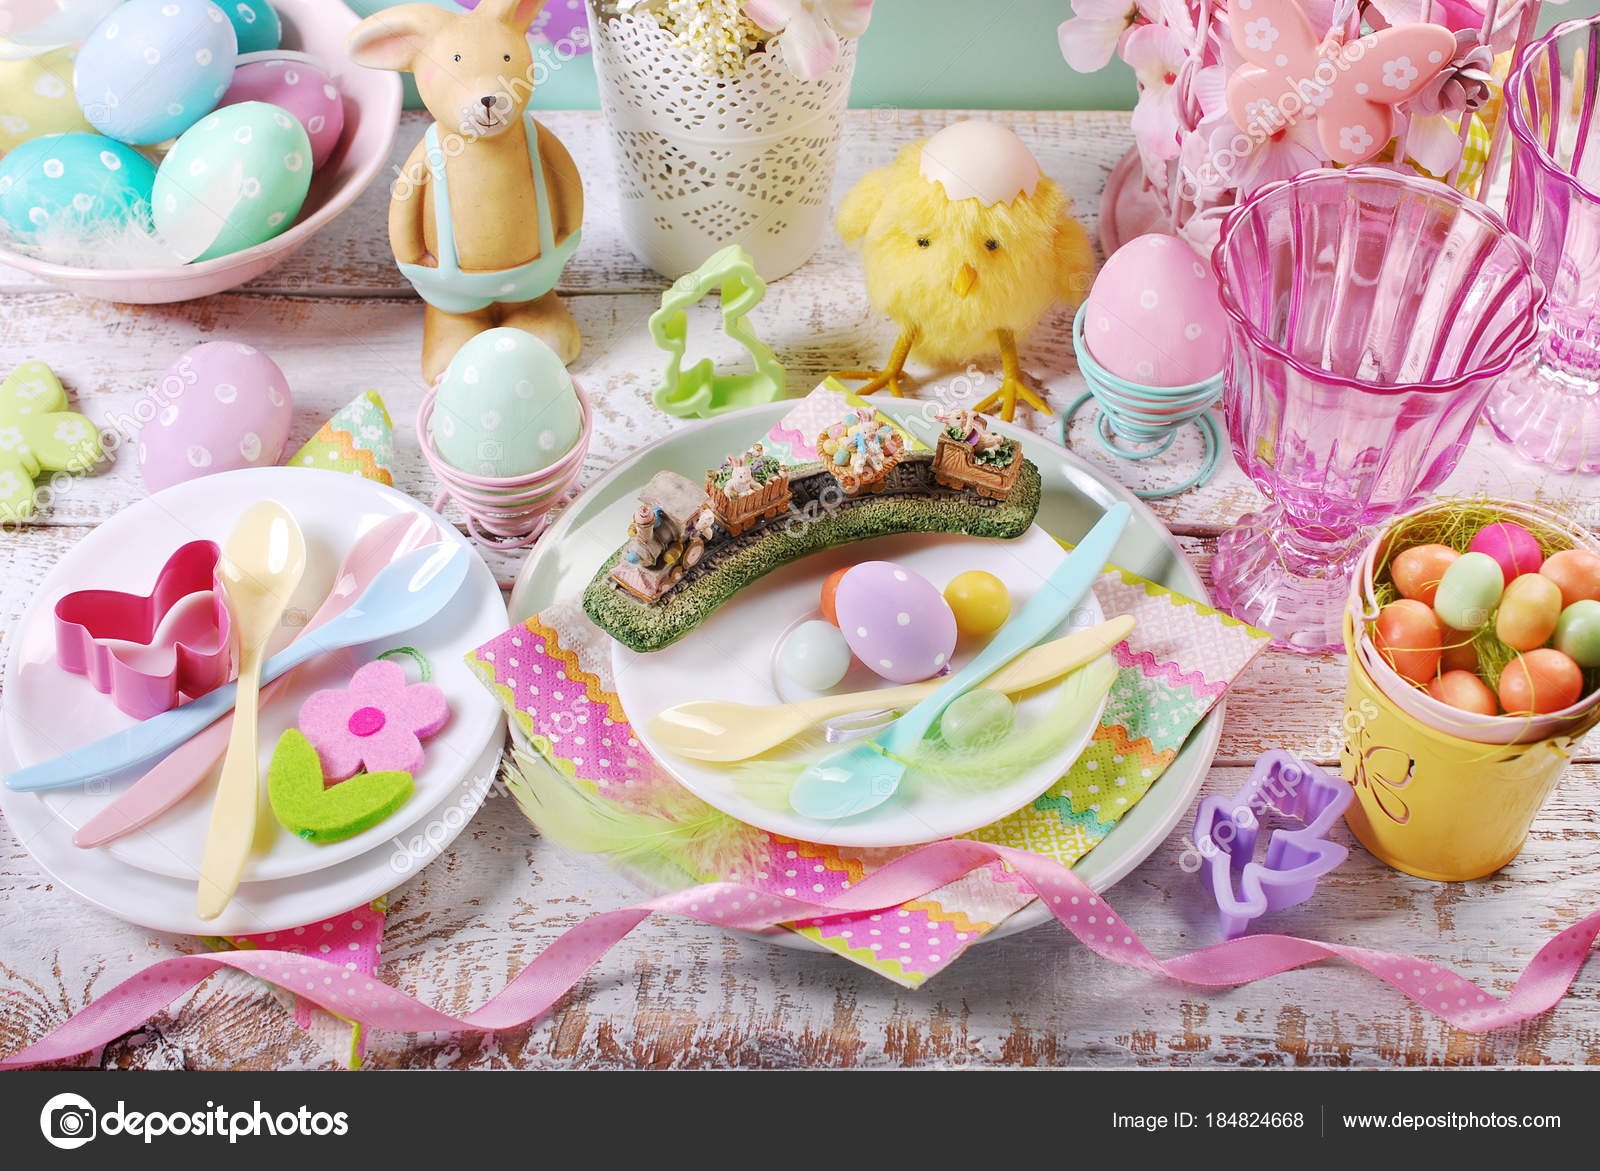 Easter table setting for kids in pastel colors u2014 Stock Photo & easter table setting for kids in pastel colors u2014 Stock Photo ...